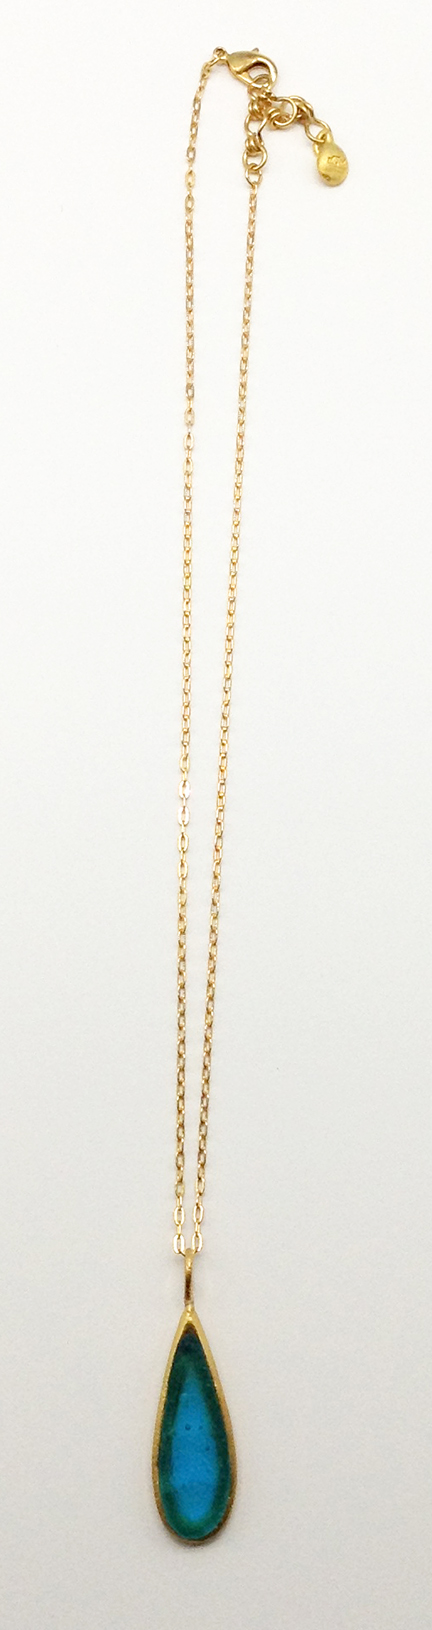 Thin Drop Pendant on Link Chain 16